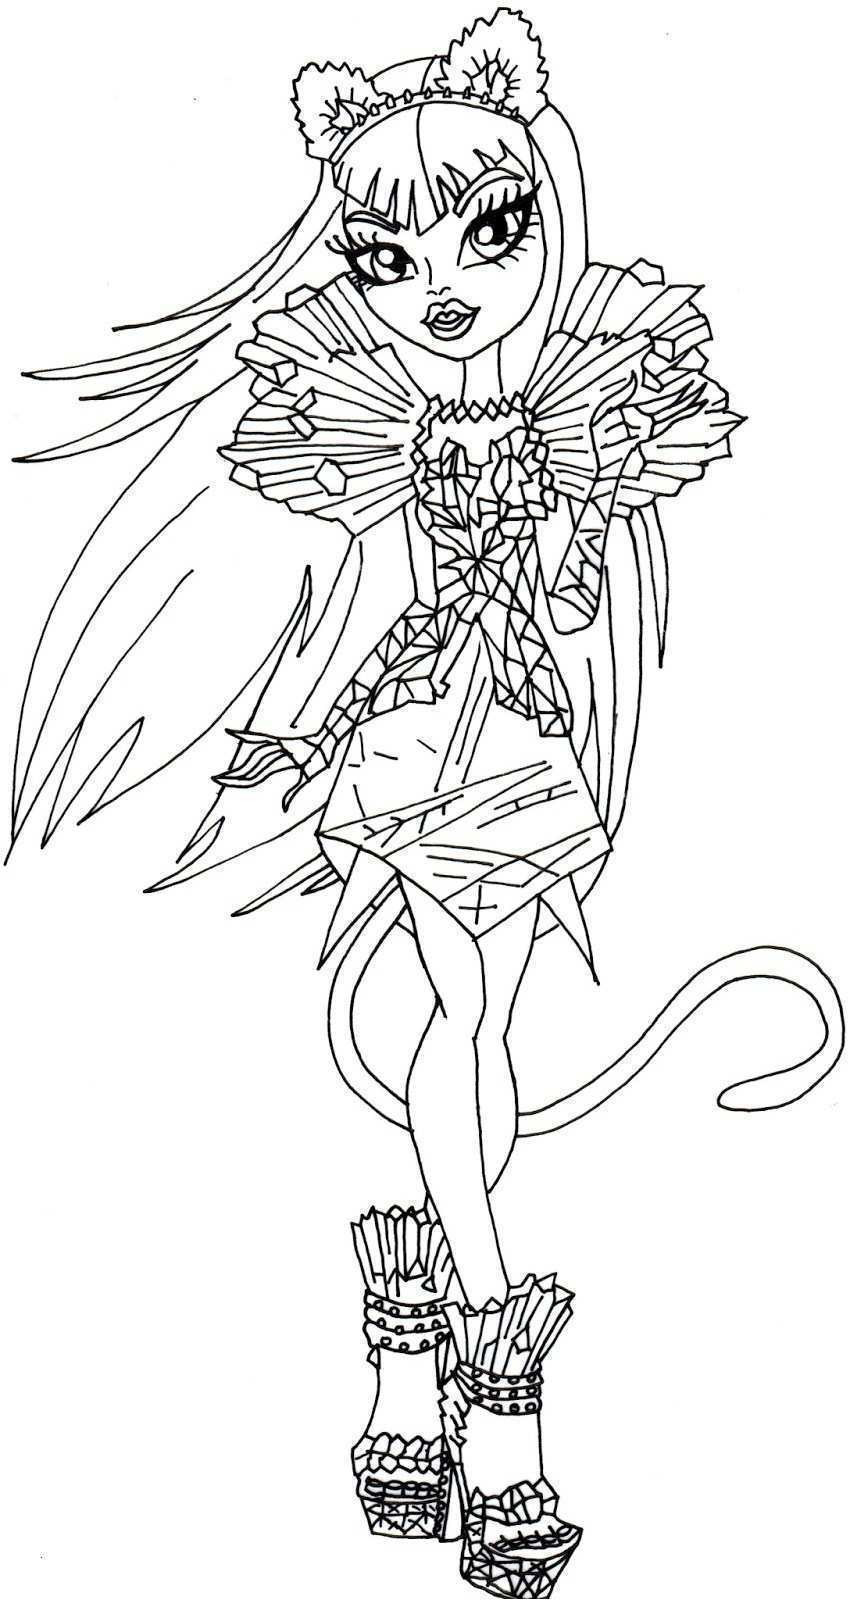 Malvorlagen Monster High Frisch Coloriage Monster High Catty Noir Frais 35 Ausmalbilder Monster High Das Bild